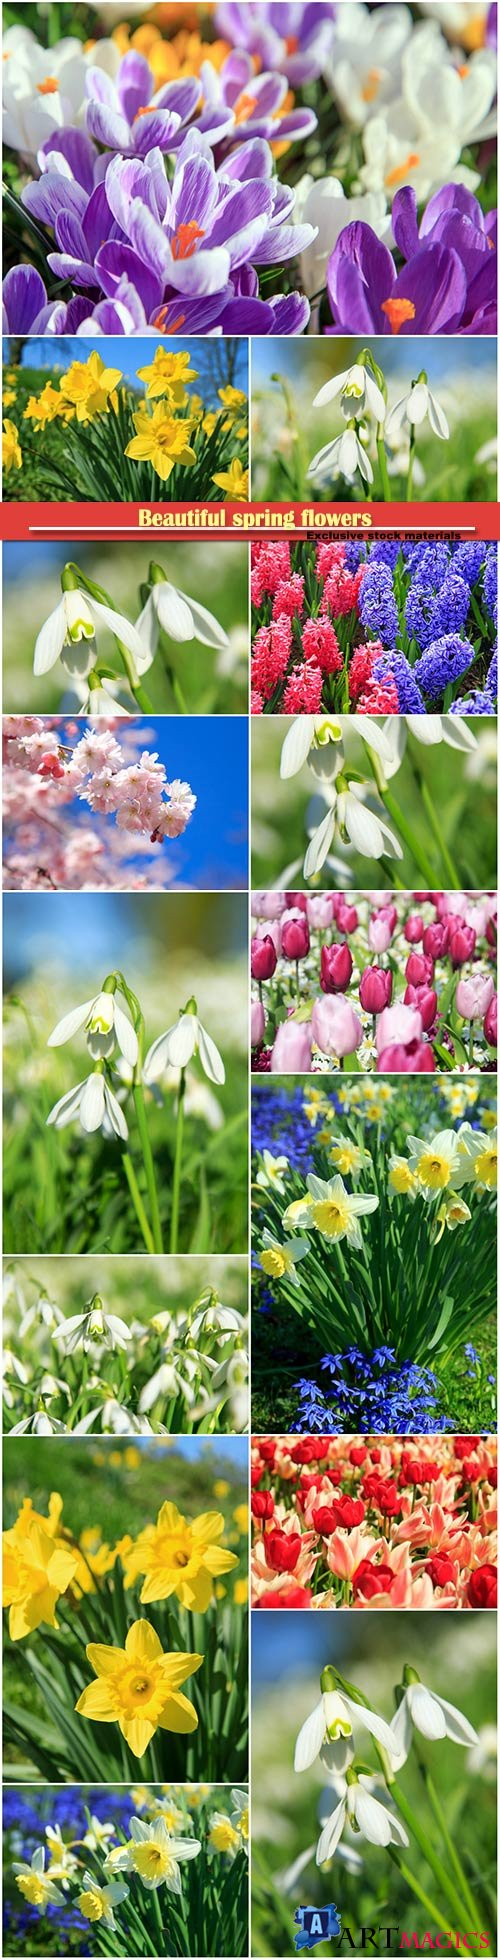 Beautiful spring flowers, snowdrops, daffodils, hyacinths, crocuses